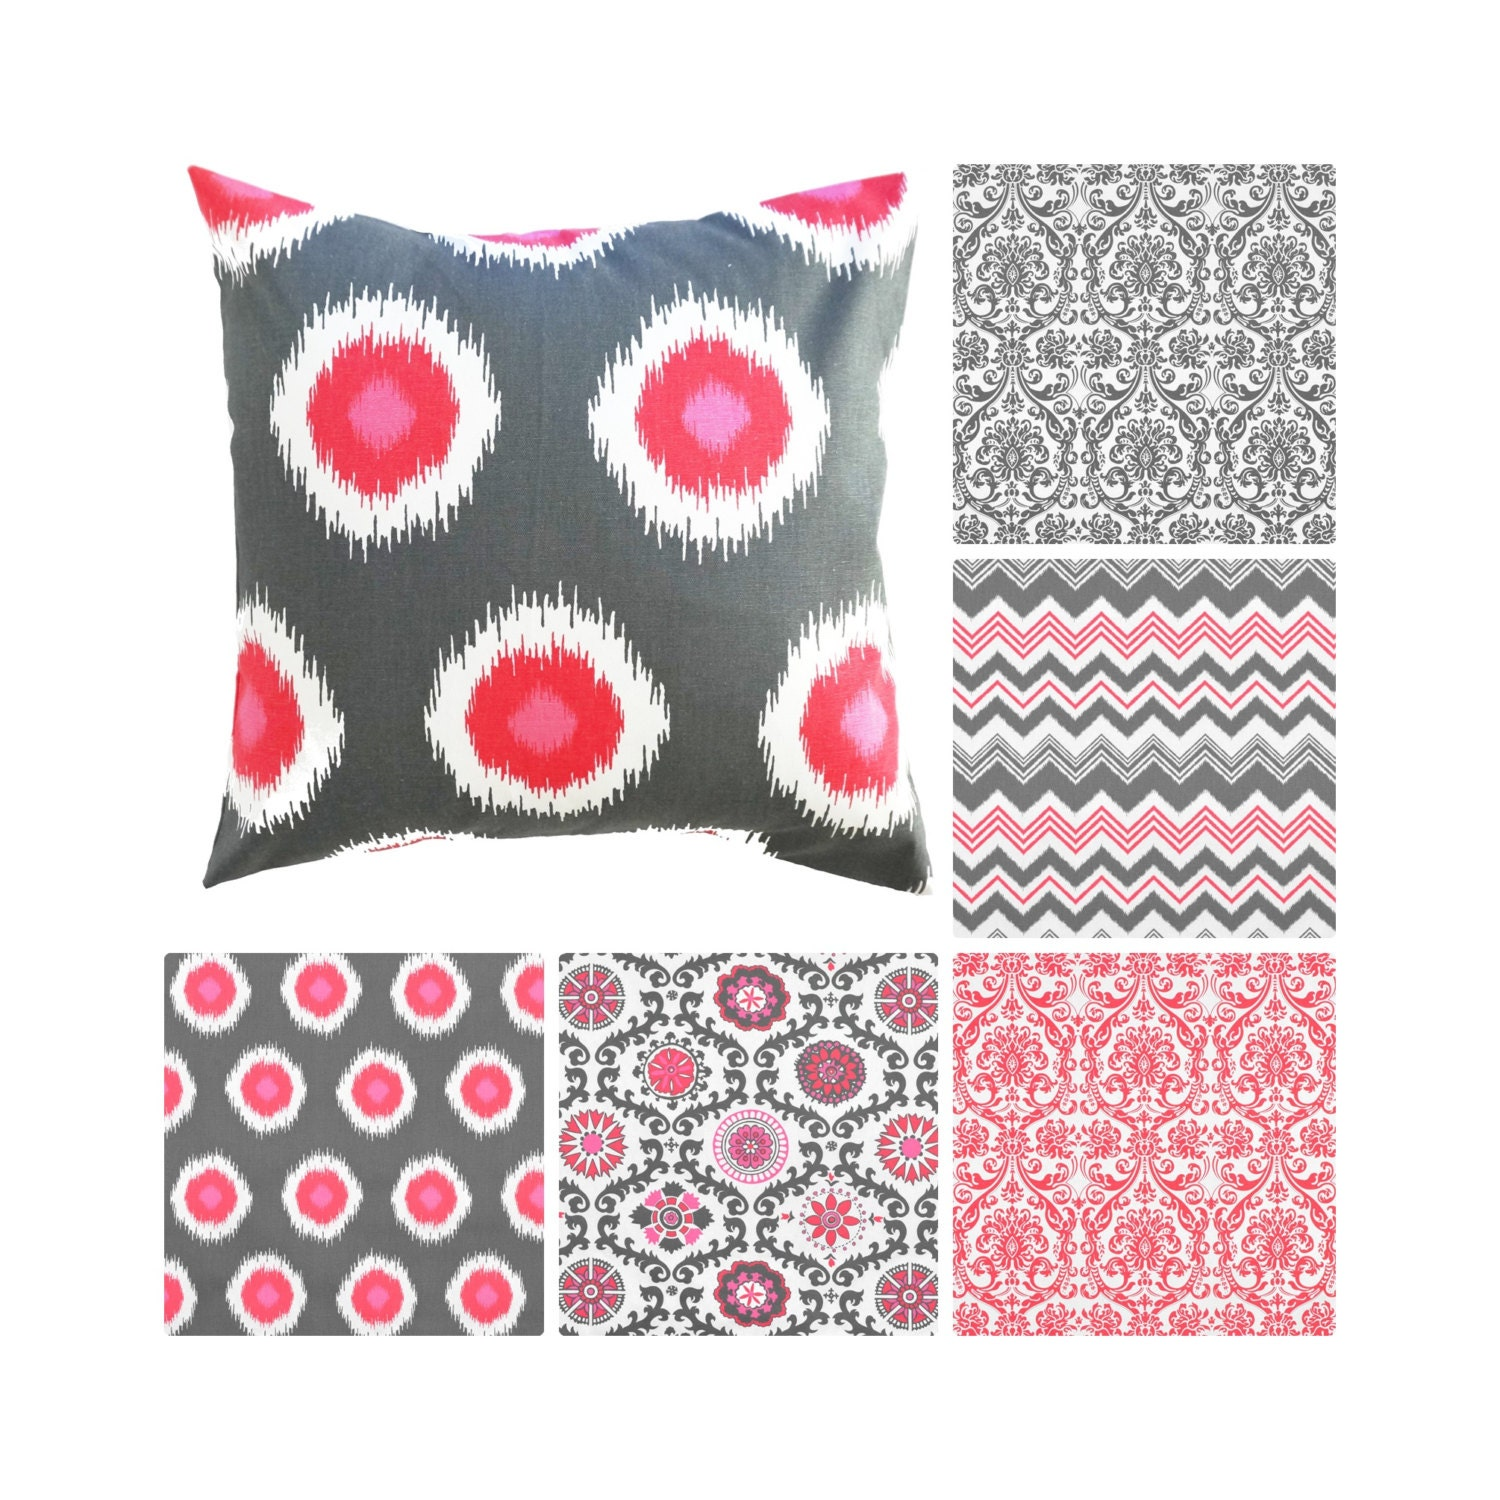 Grey And Pink Decorative Pillows : Pink Grey Decorative Pillows.Pink Pillow Covers.Red Damask